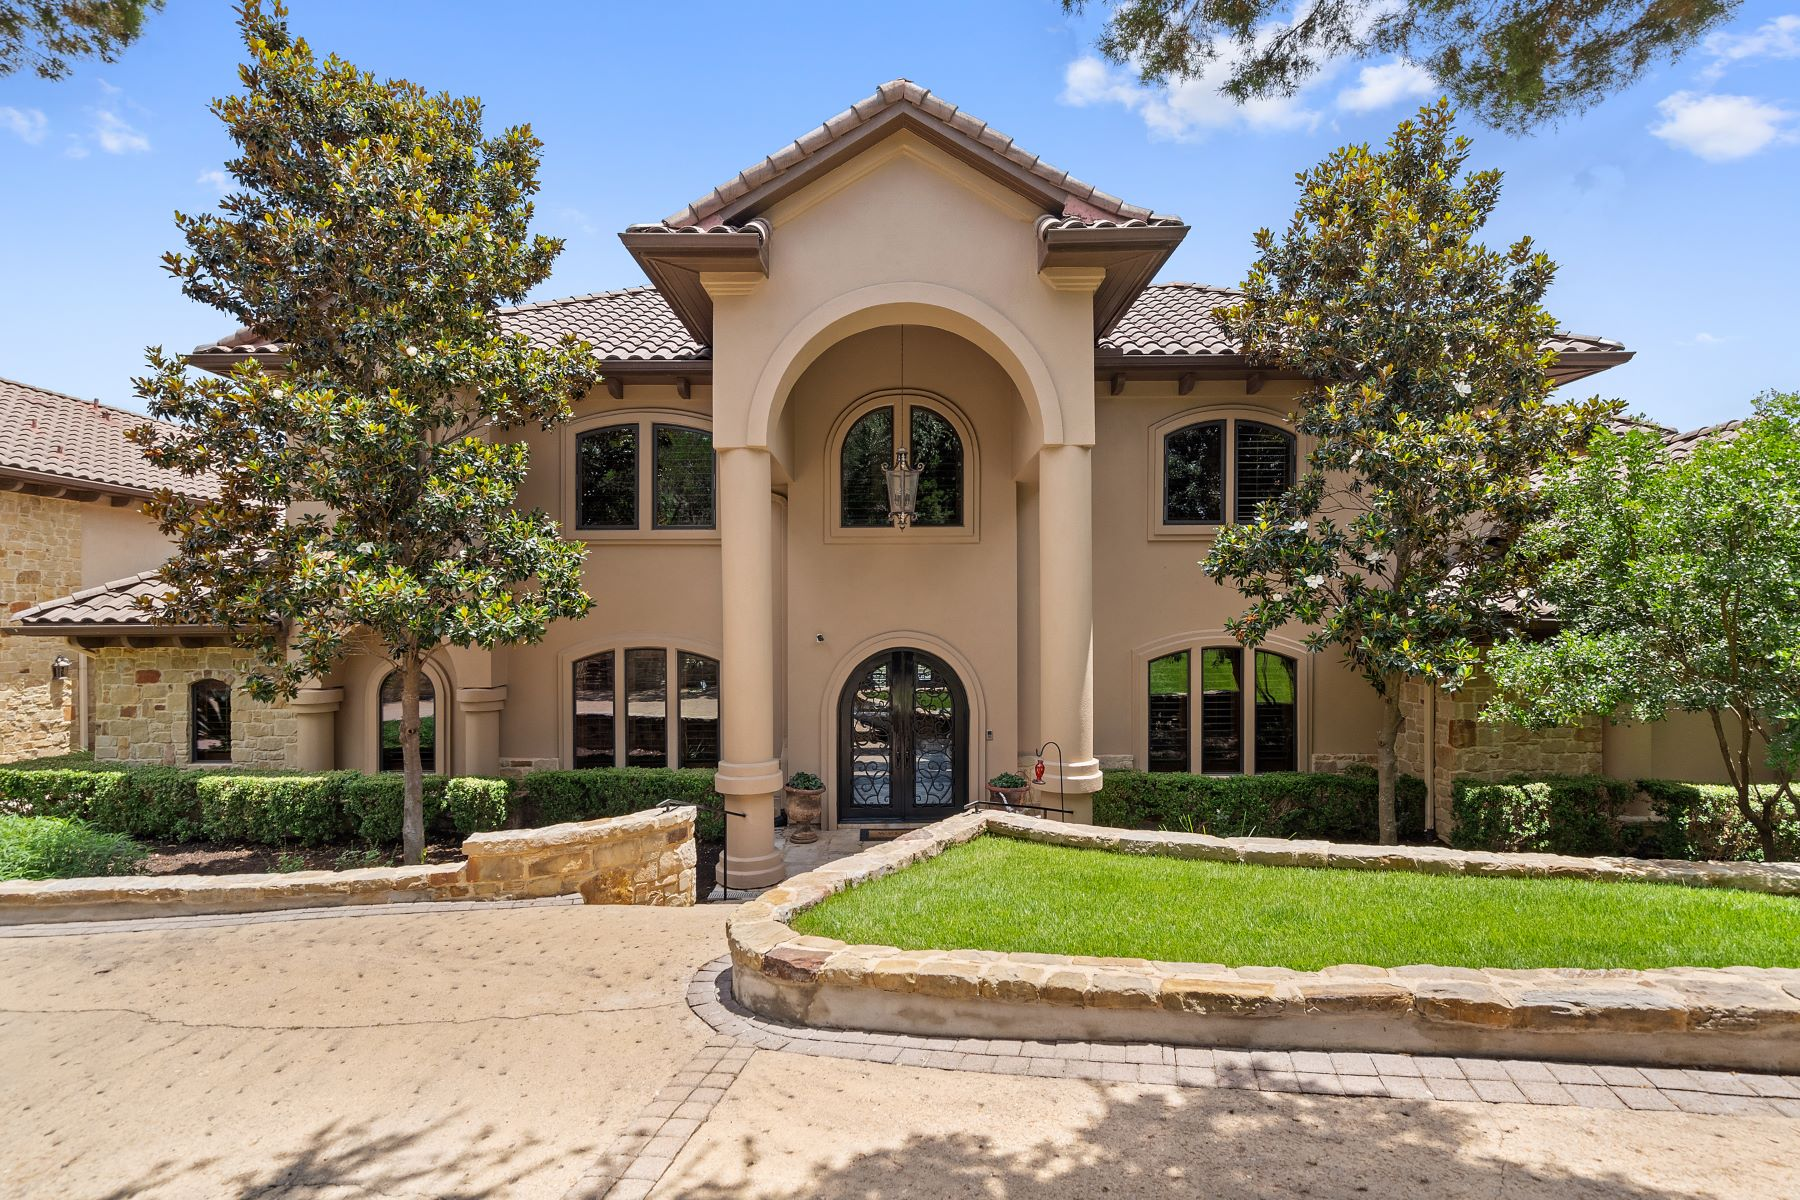 Single Family Homes for Sale at Picturesque Setting in the Texas Hill Country 32 Water Front Avenue Lakeway, Texas 78734 United States